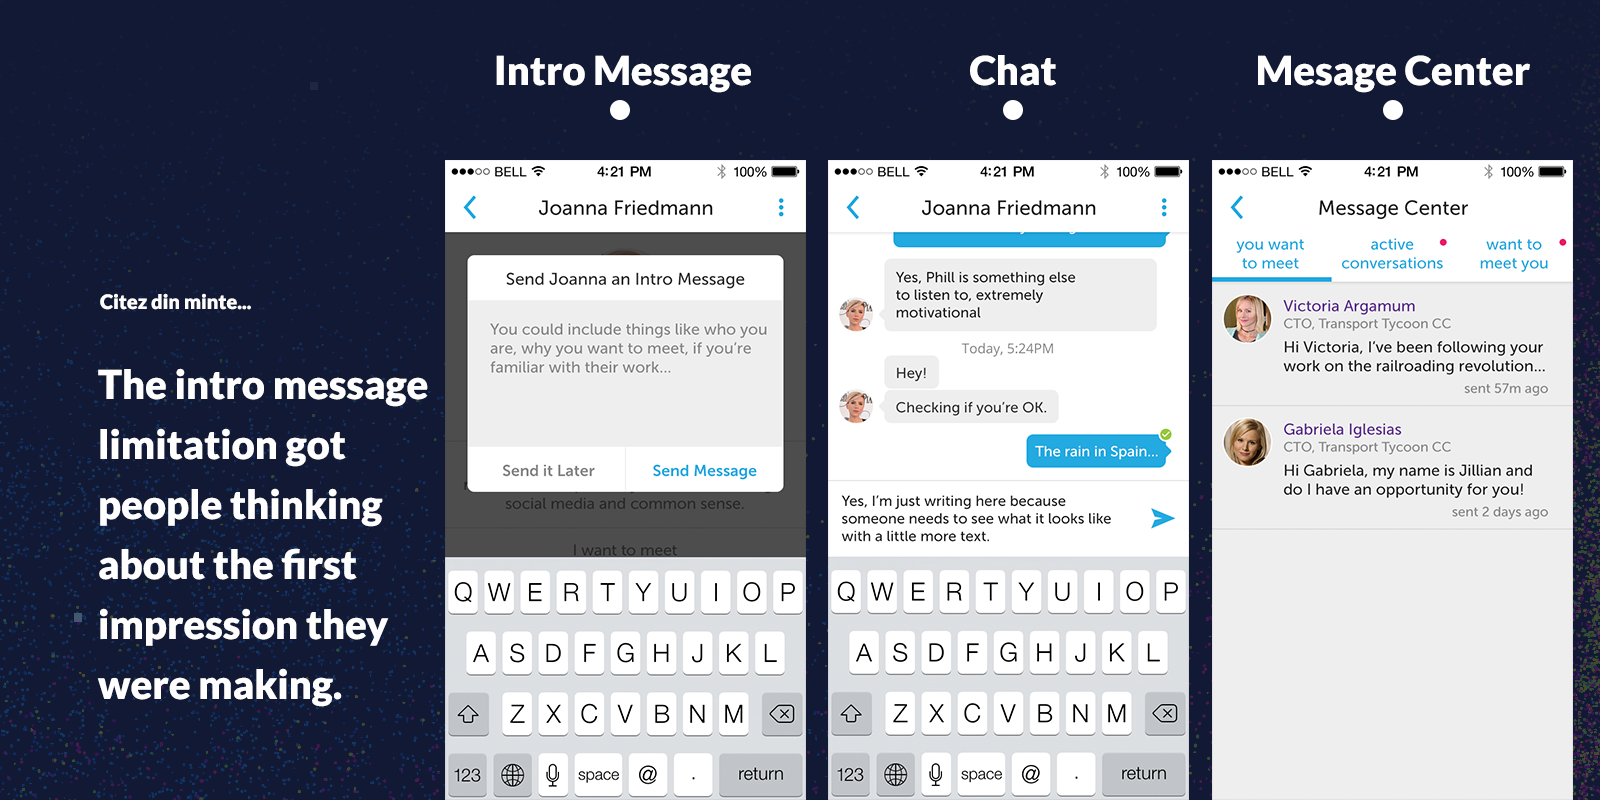 how to web 2016 conference app chat intro essage